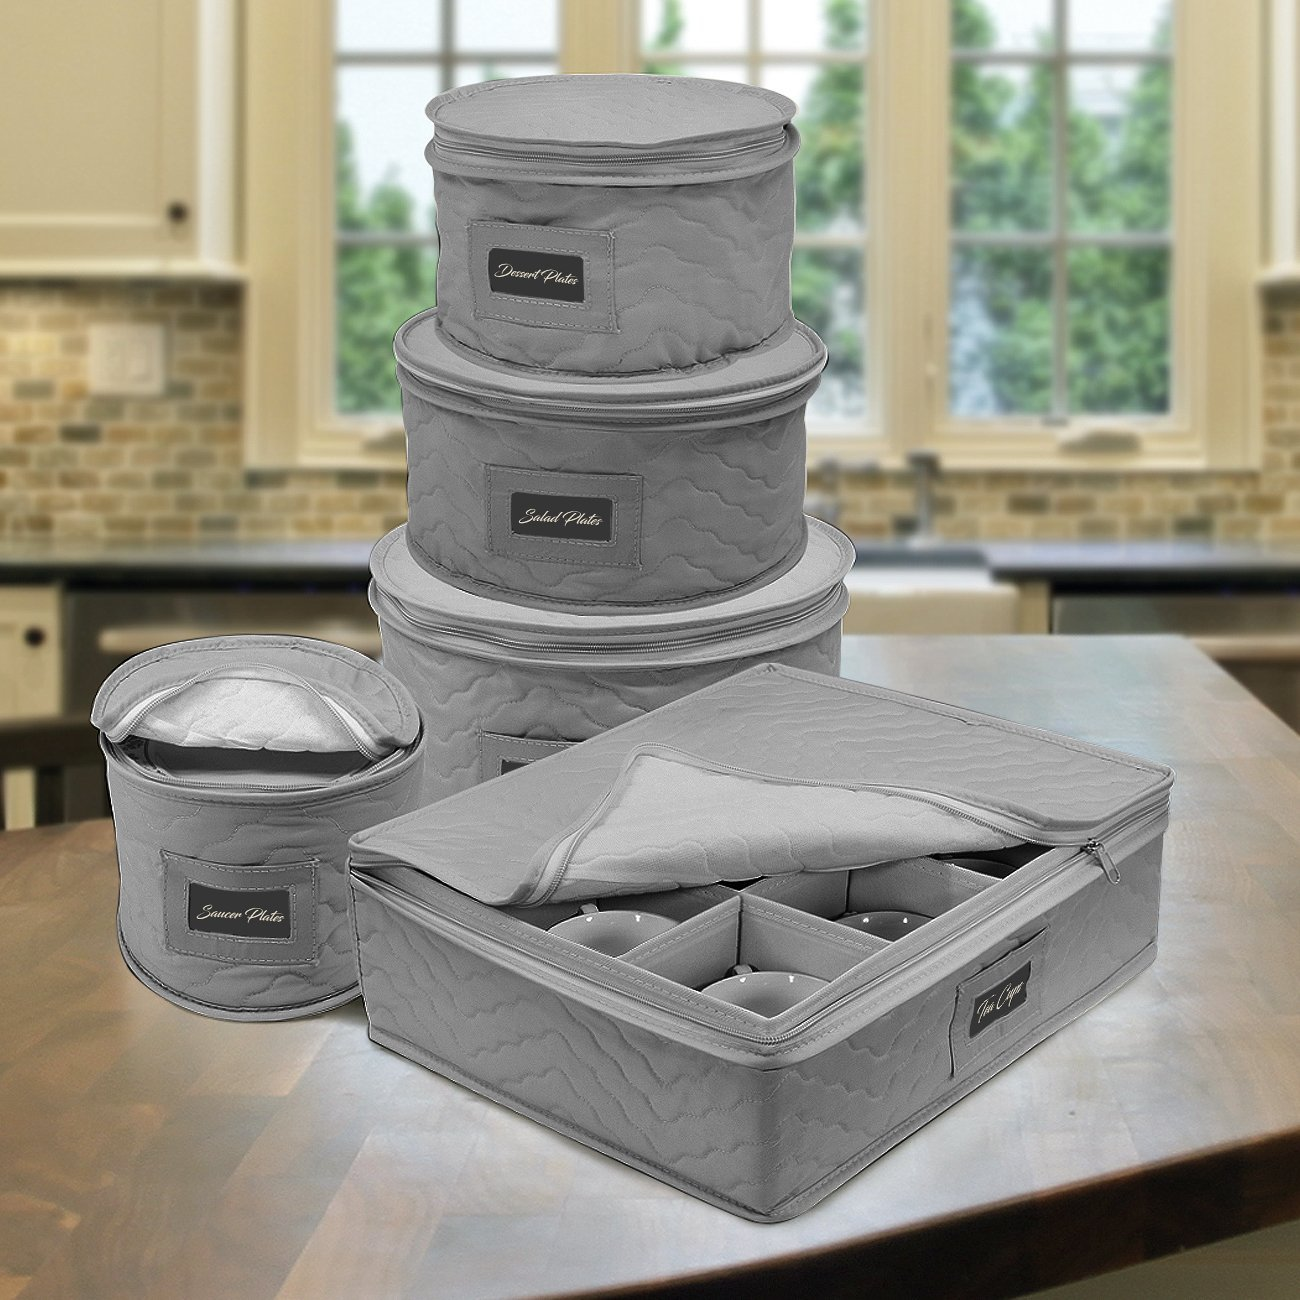 Dinnerware Storage - Gray 5 Piece Set